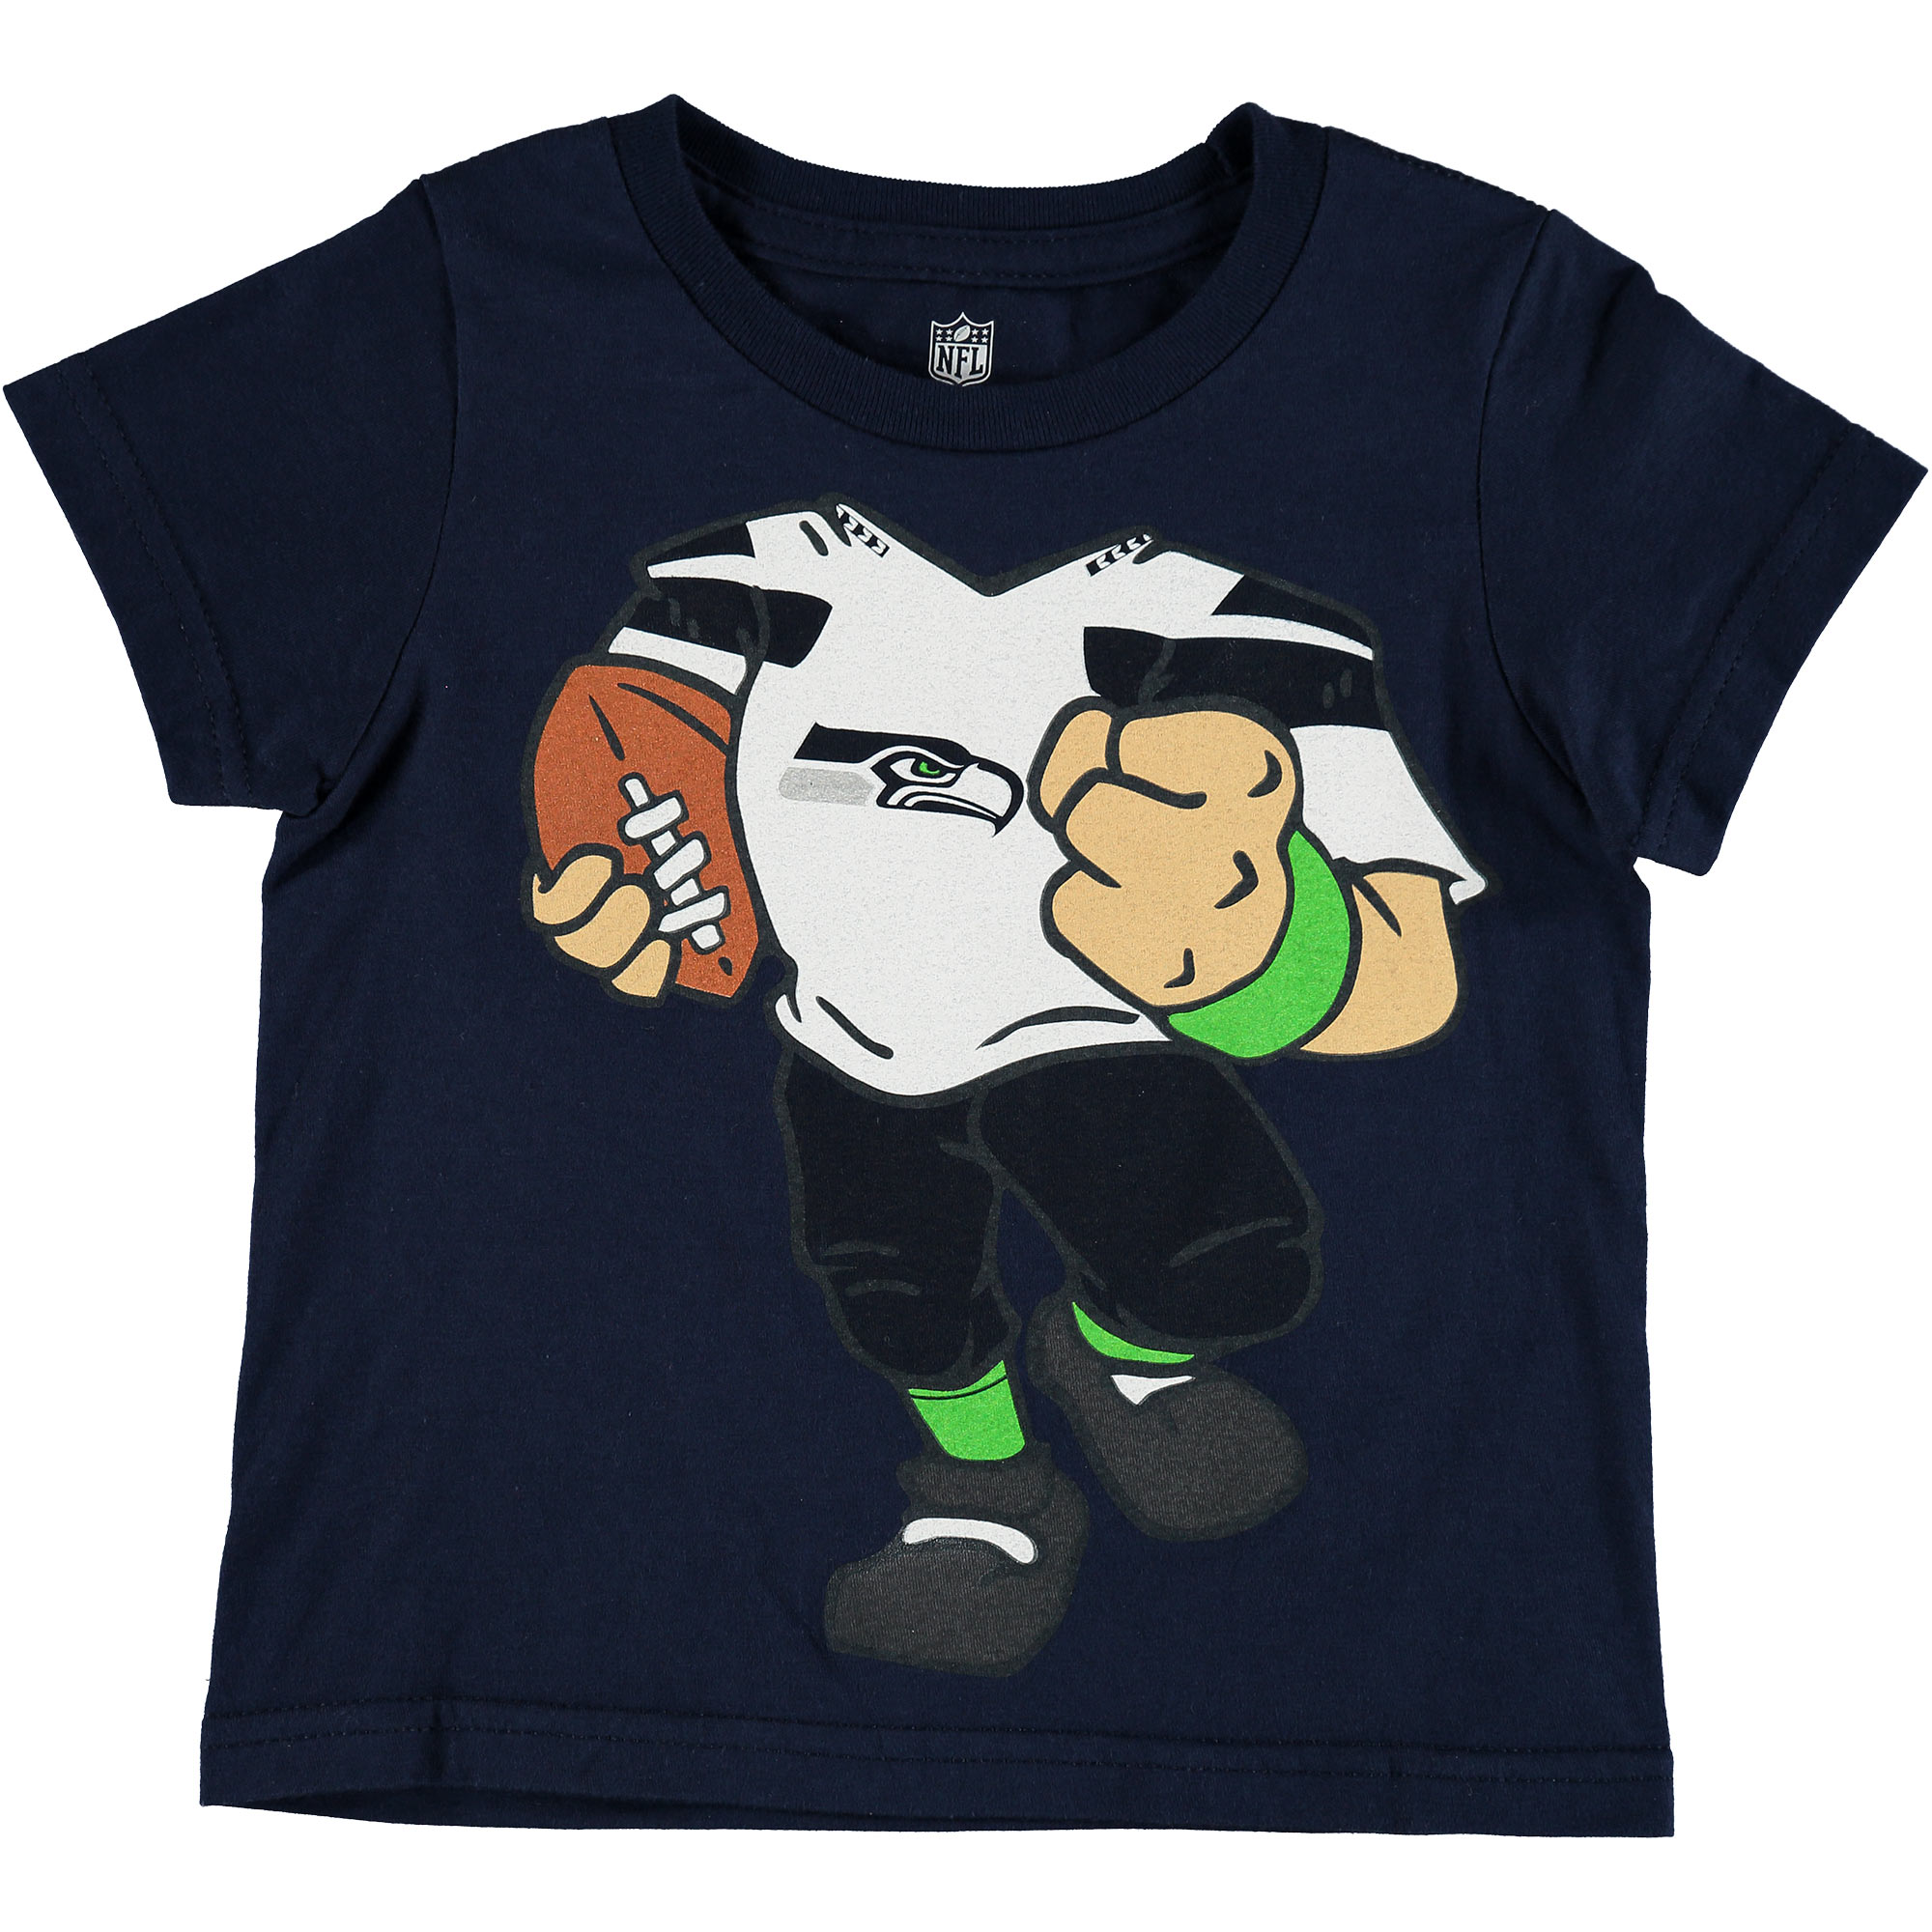 Seattle Seahawks Toddler Football Dreams T-Shirt - College Navy